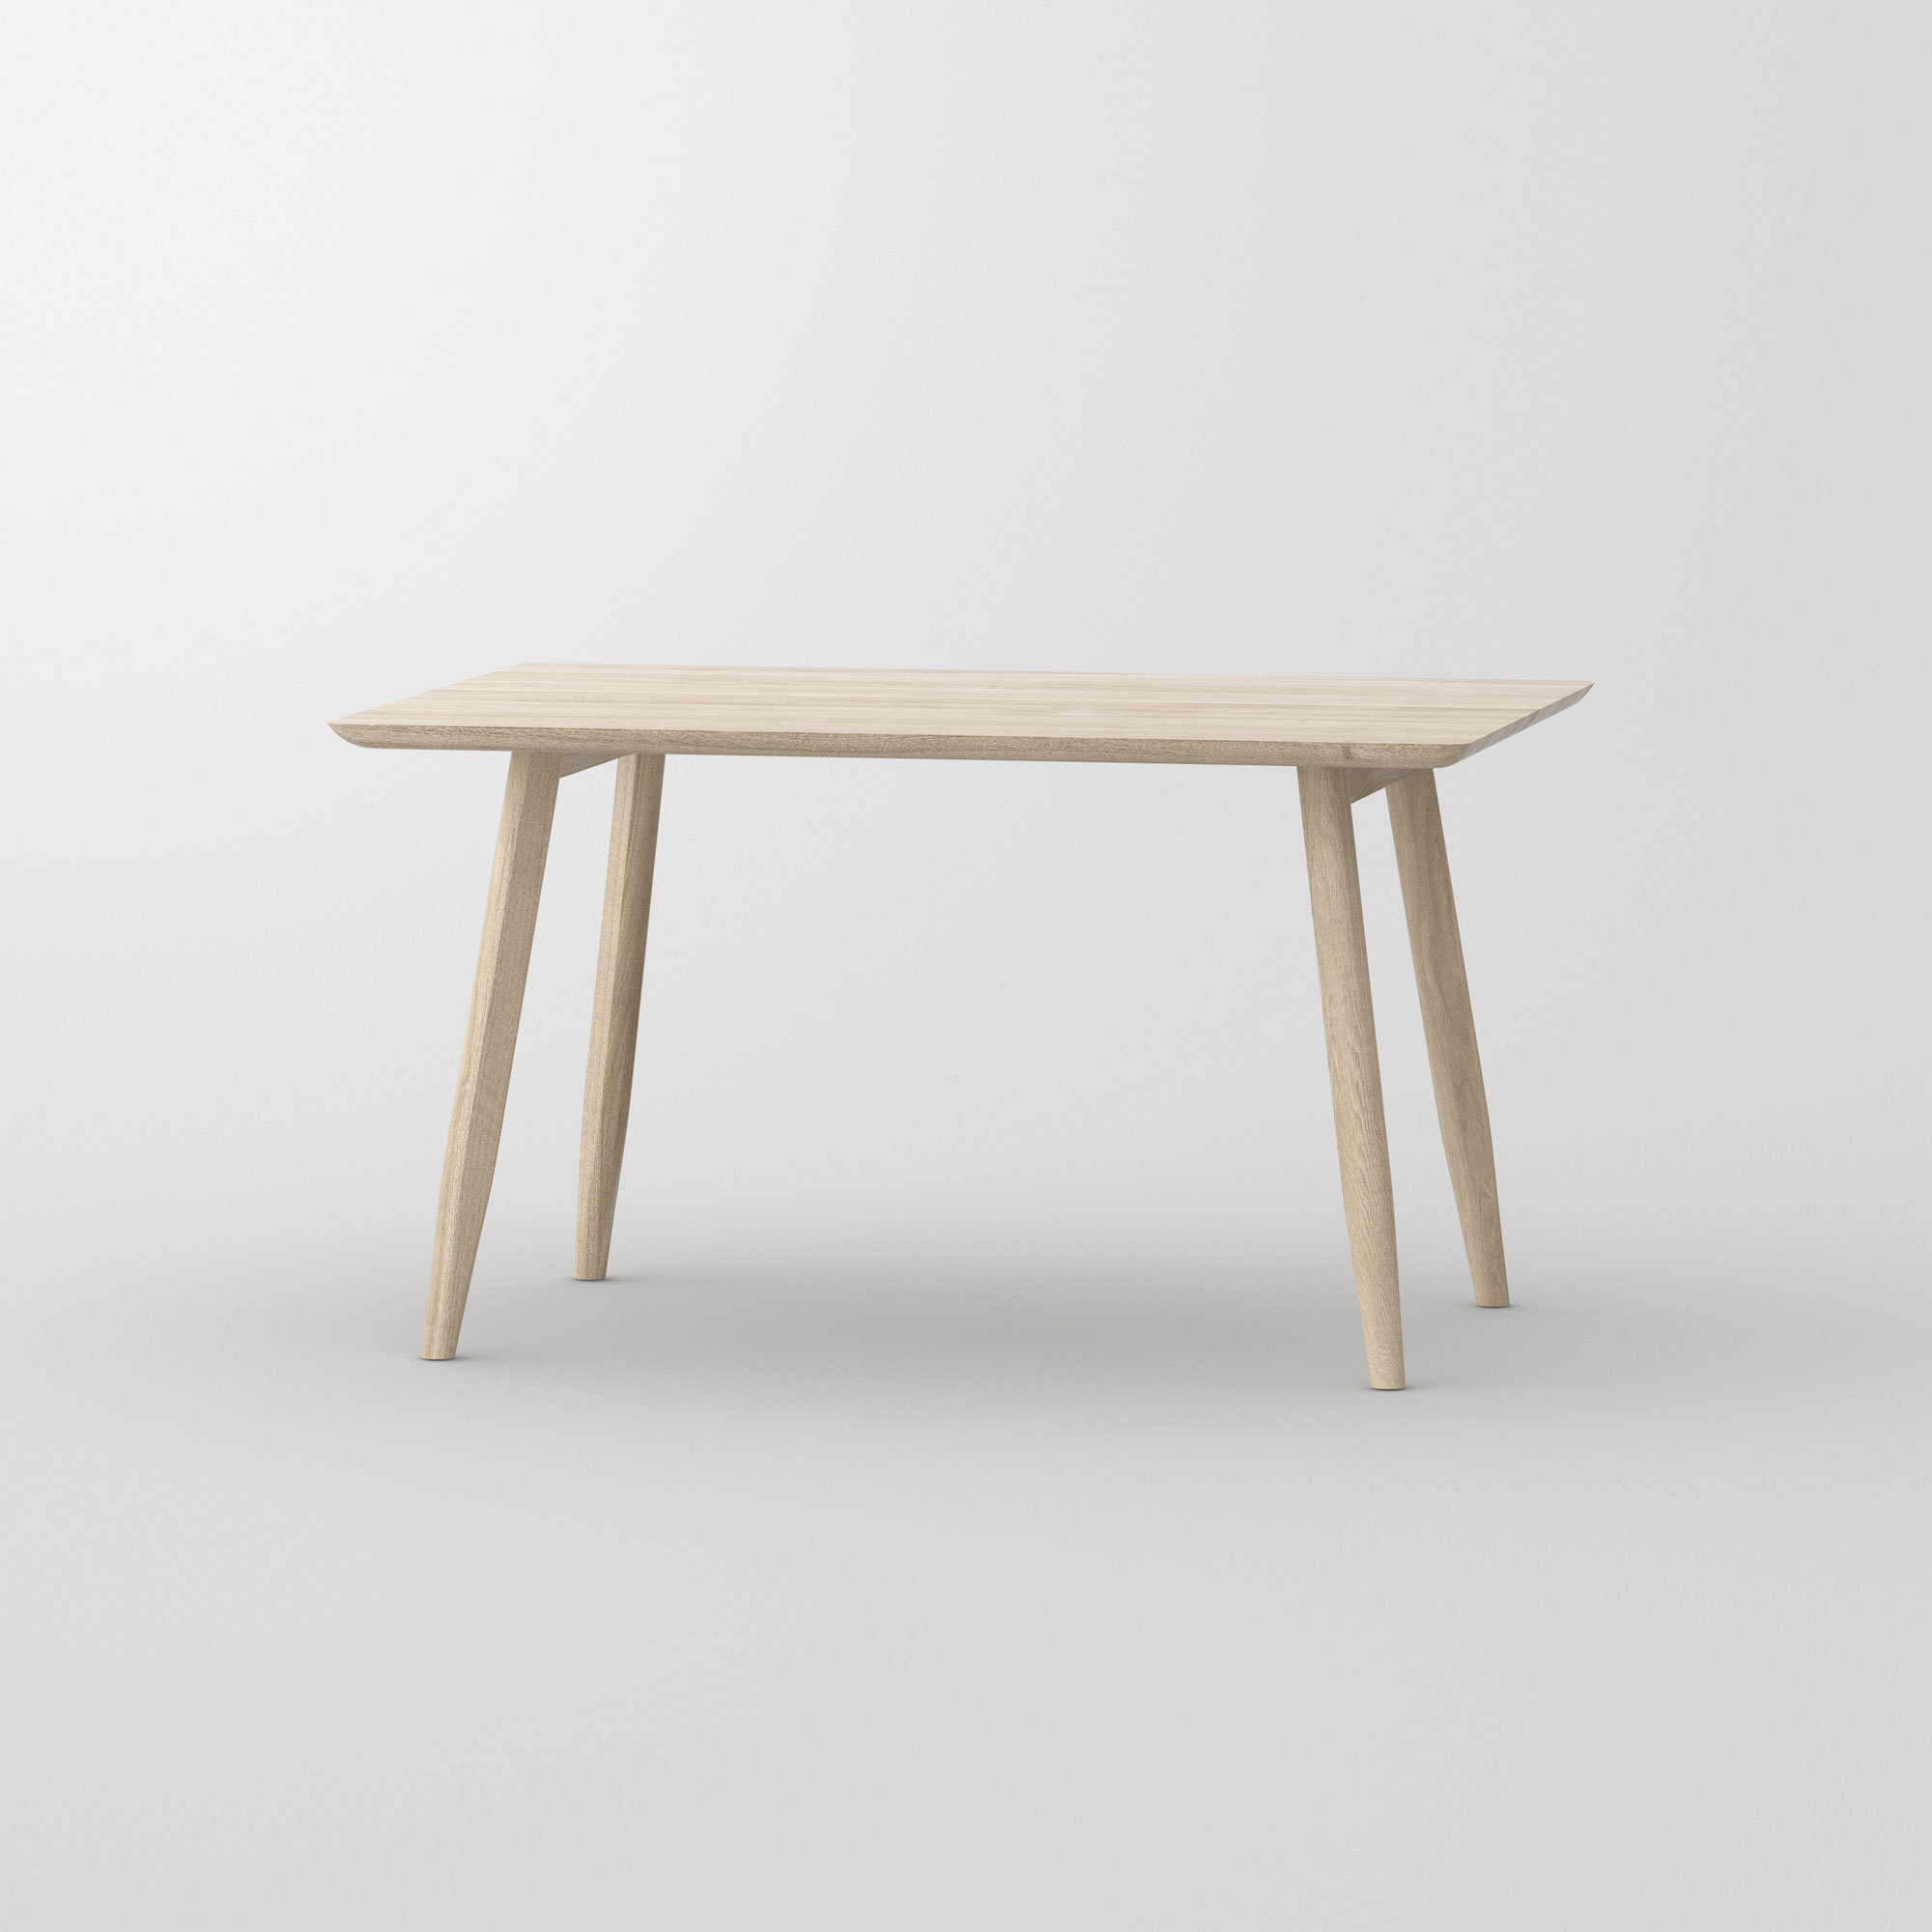 Designer Dining Table Wood AETAS BASIC 3 cam2 custom made in solid wood by vitamin design